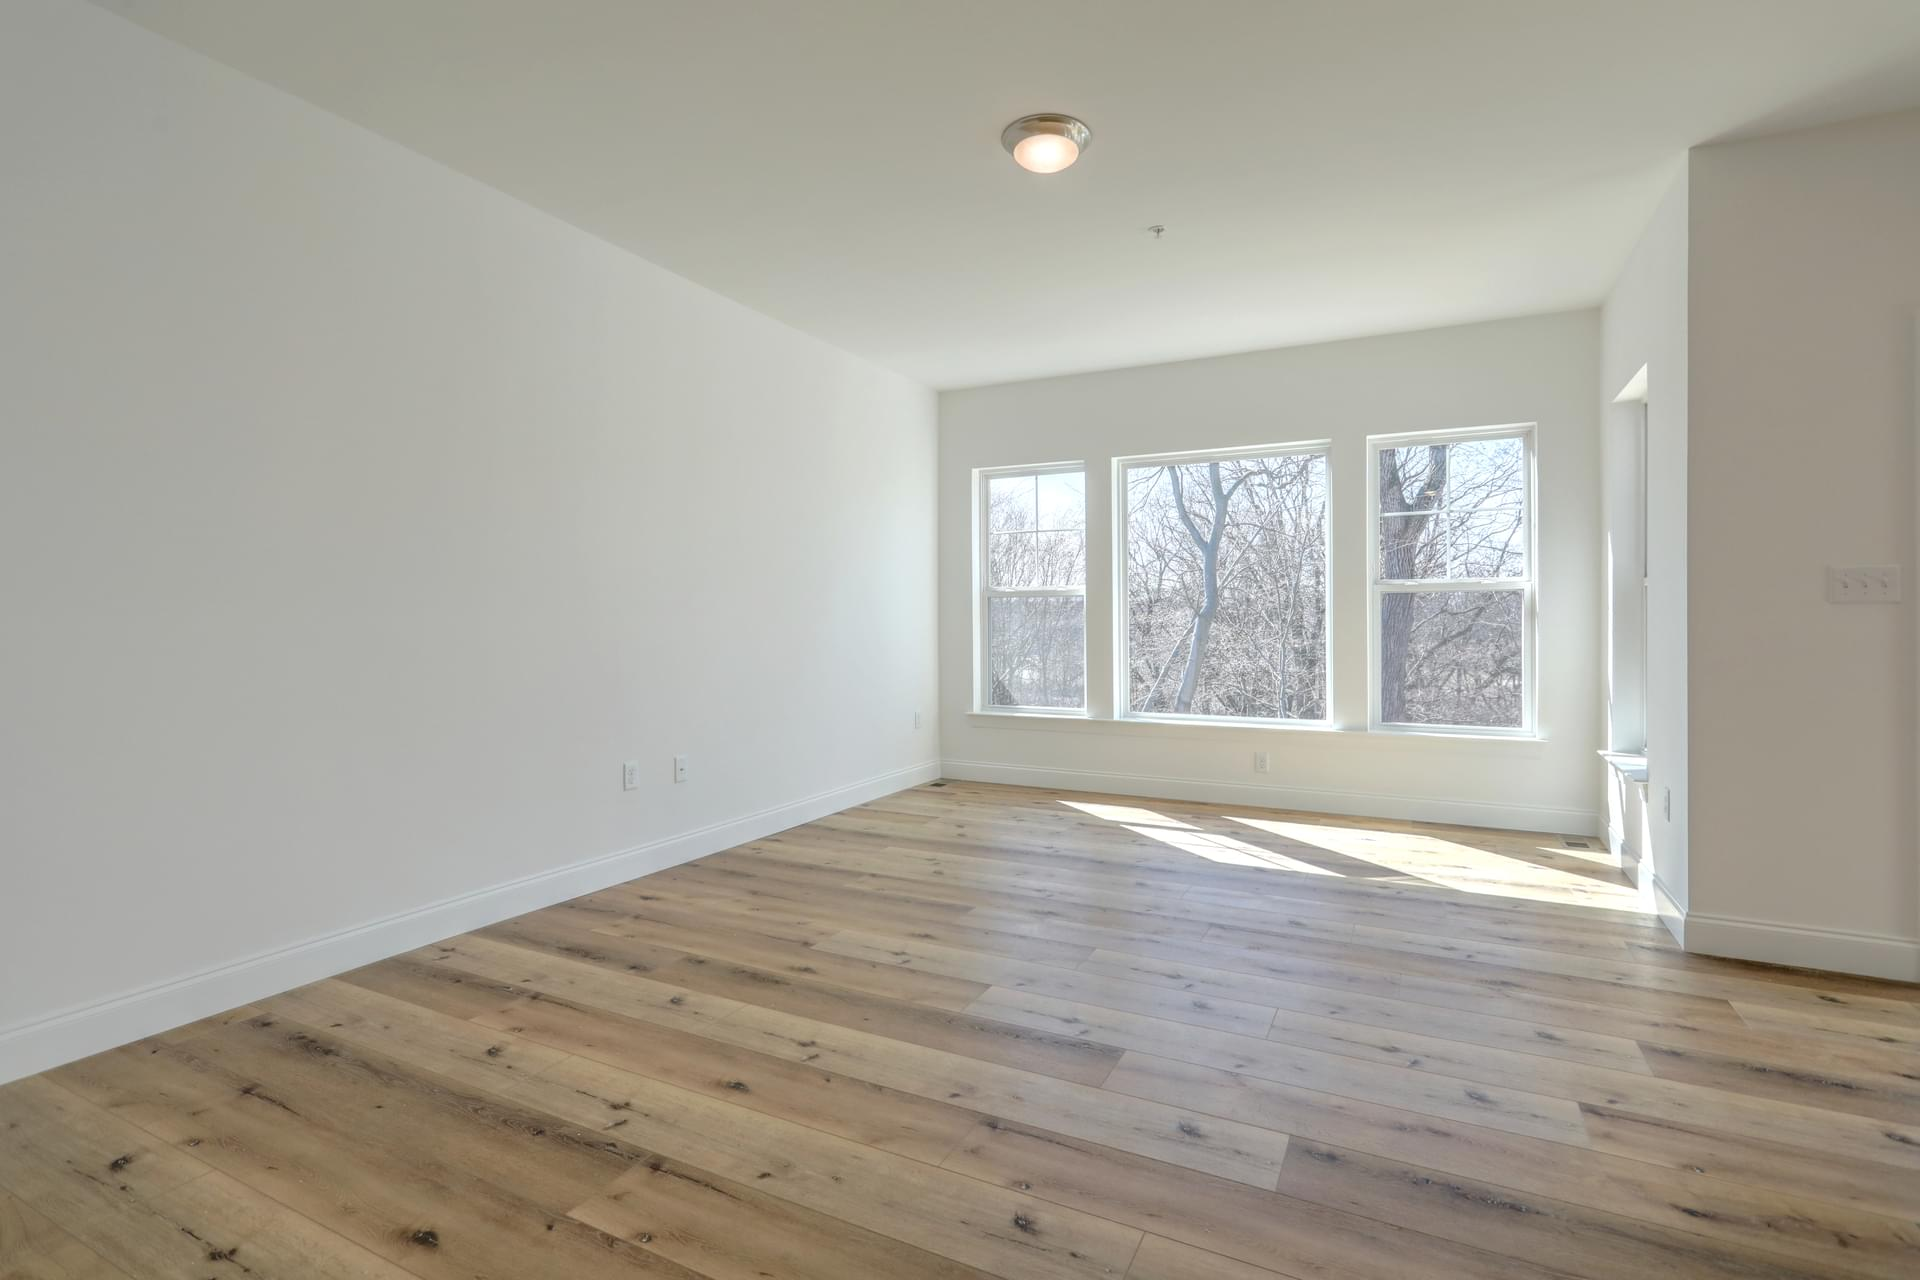 3br New Home in Pottstown, PA